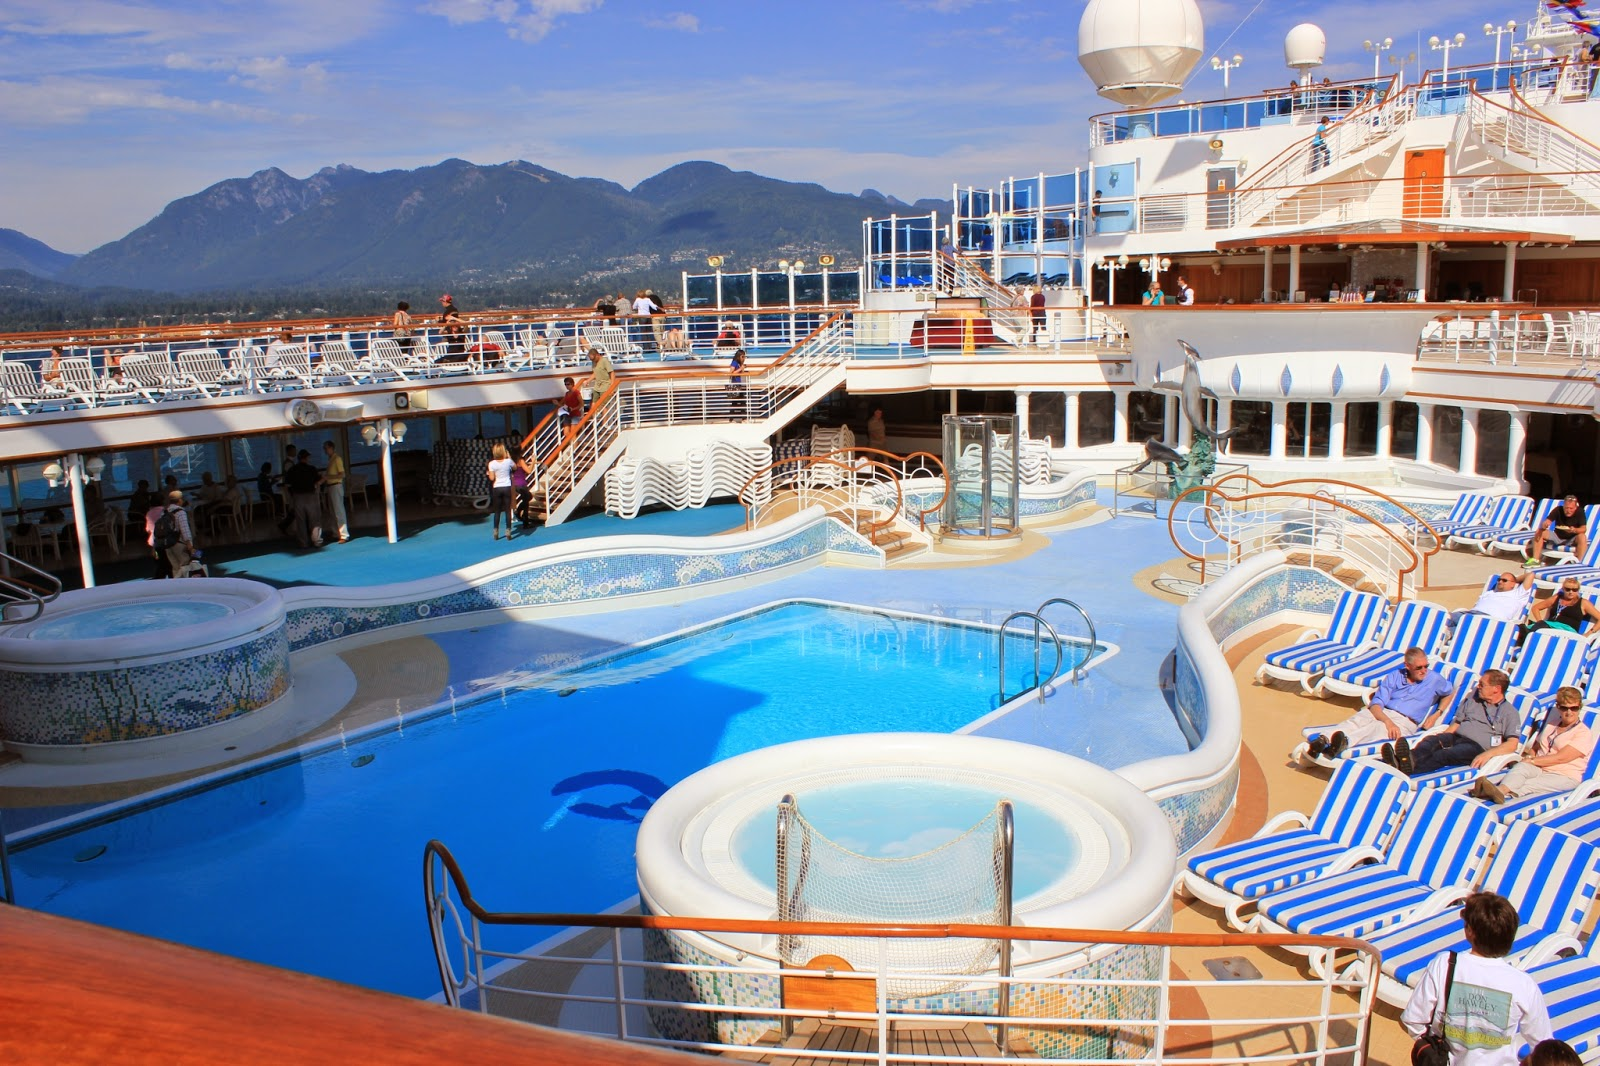 Cruising all over The world: CRUISE SHIPS FOR ALL AGE GROUPS